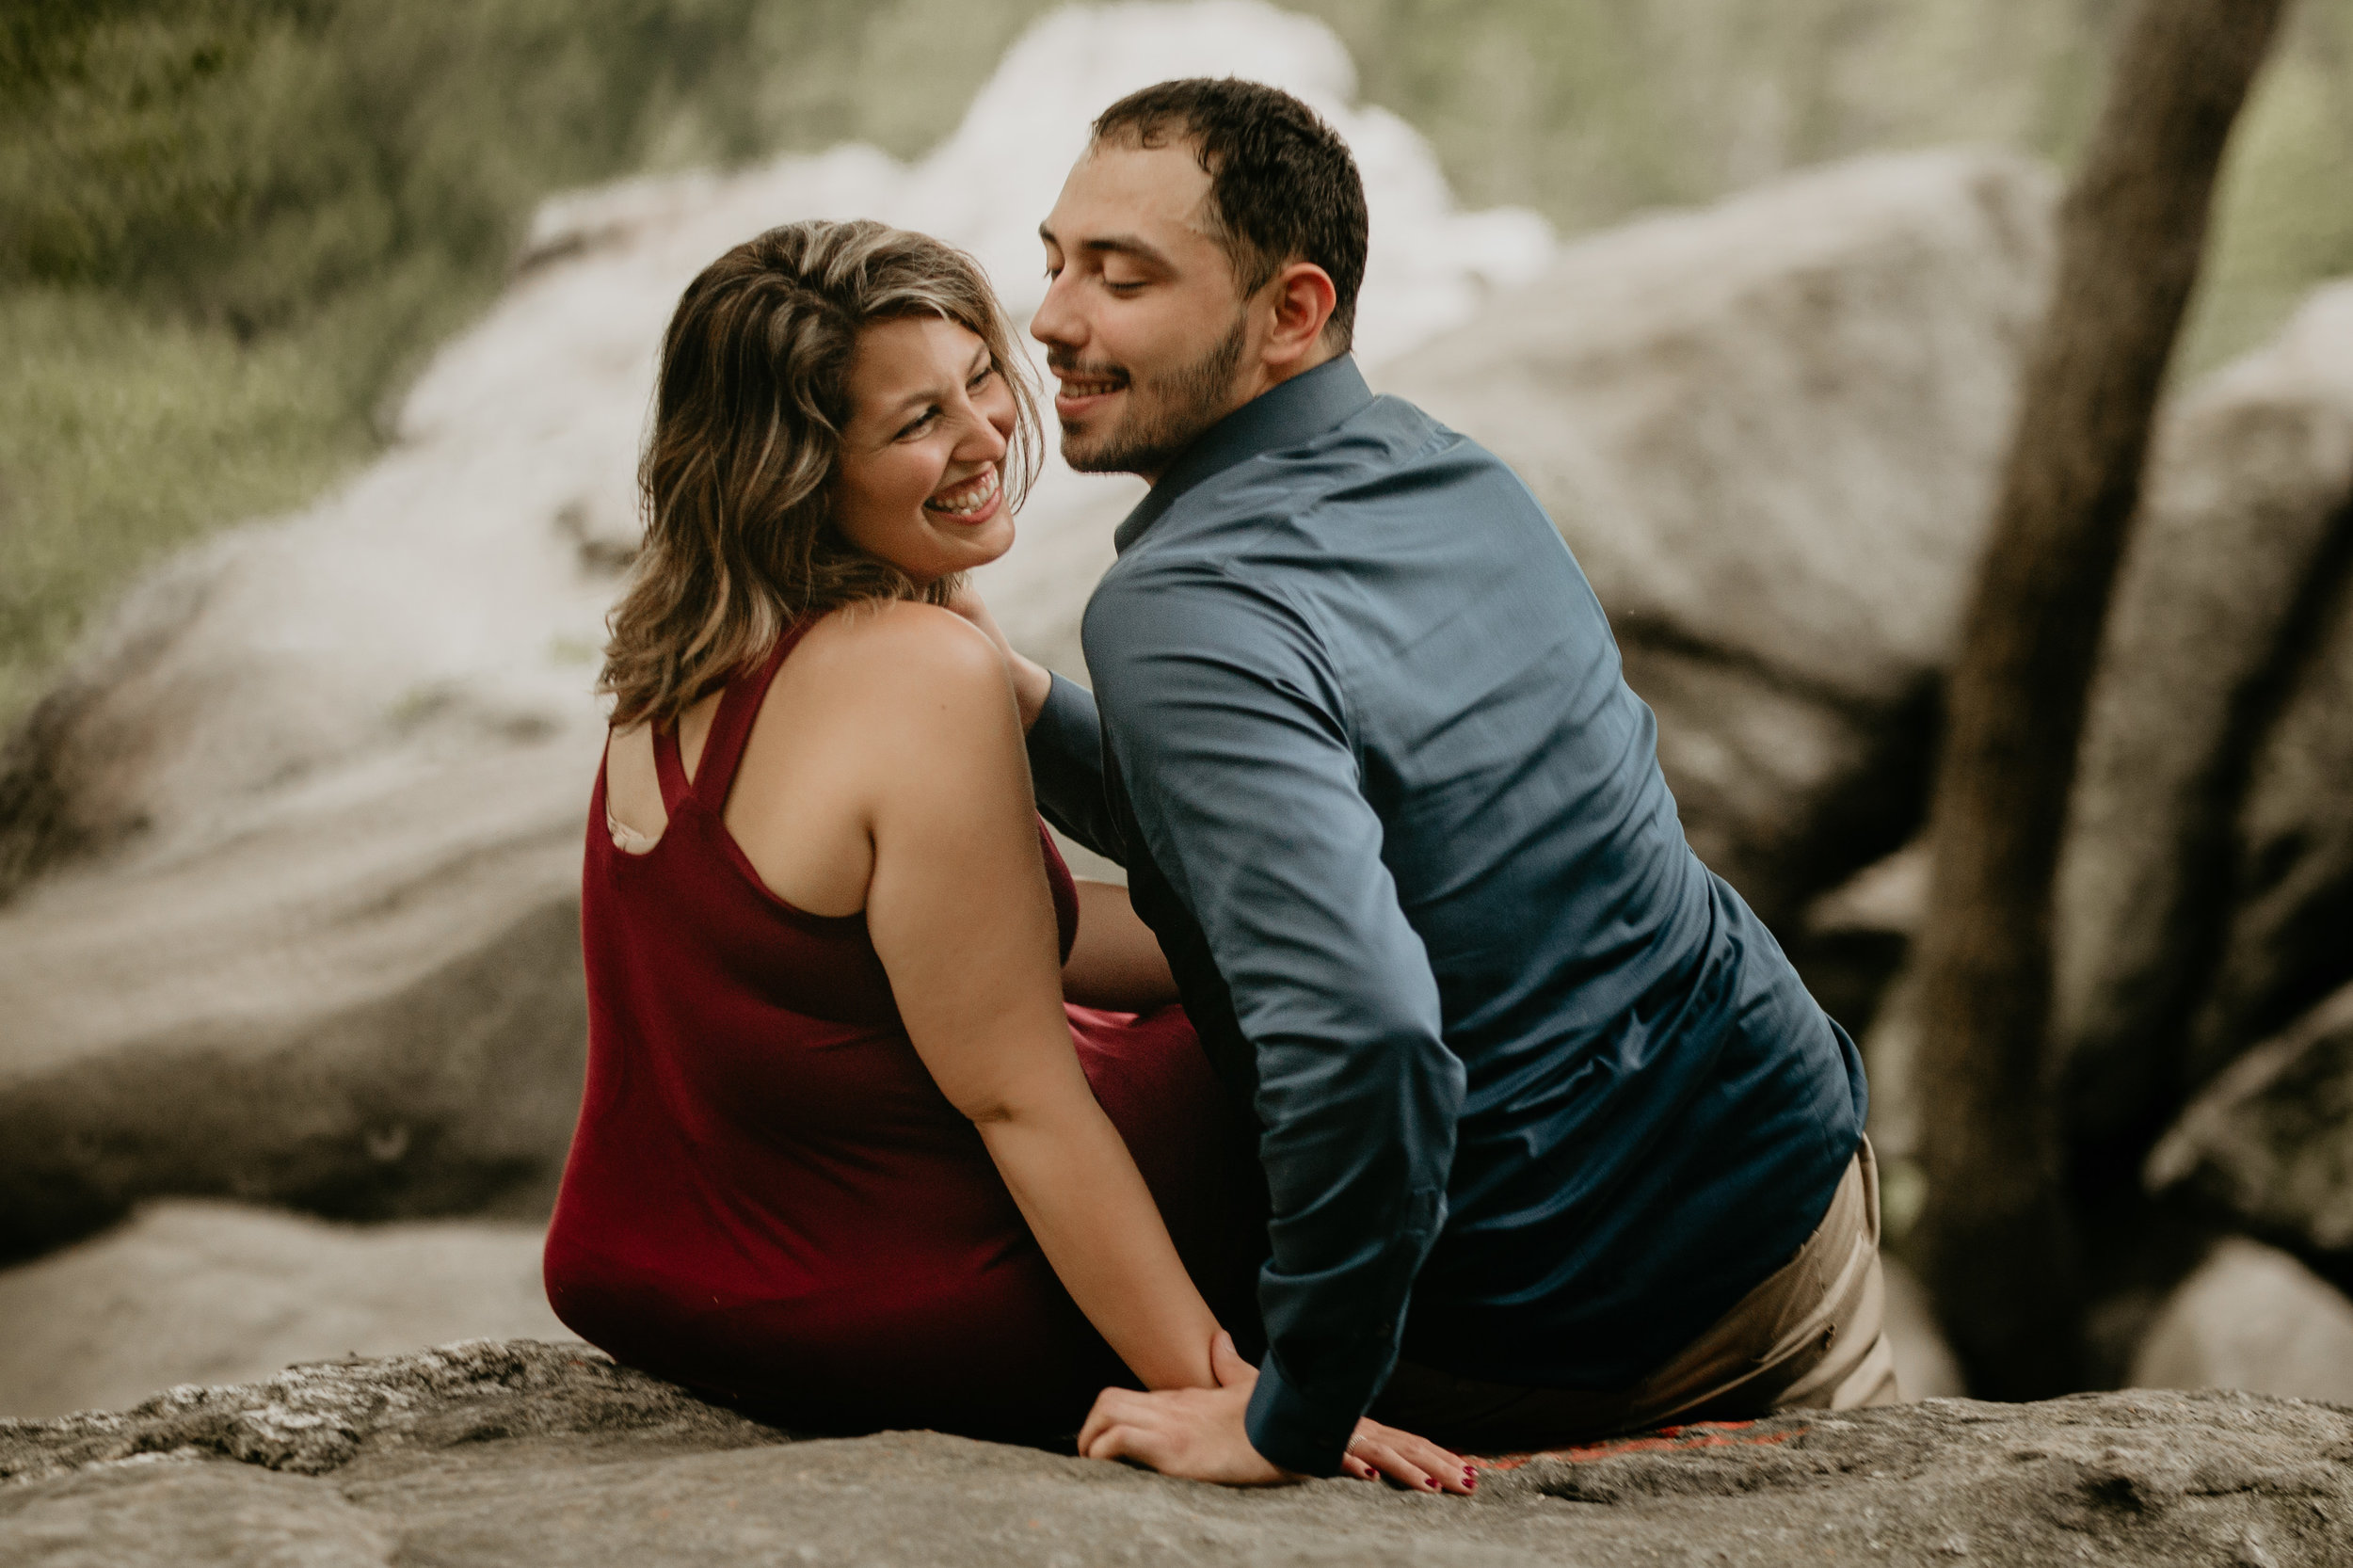 Nicole-Daacke-Photography-rock-state-park-overlook-king-queen-seat-maryland-hiking-adventure-engagement-session-photos-portraits-summer-bel-air-dog-engagement-session-21.jpg